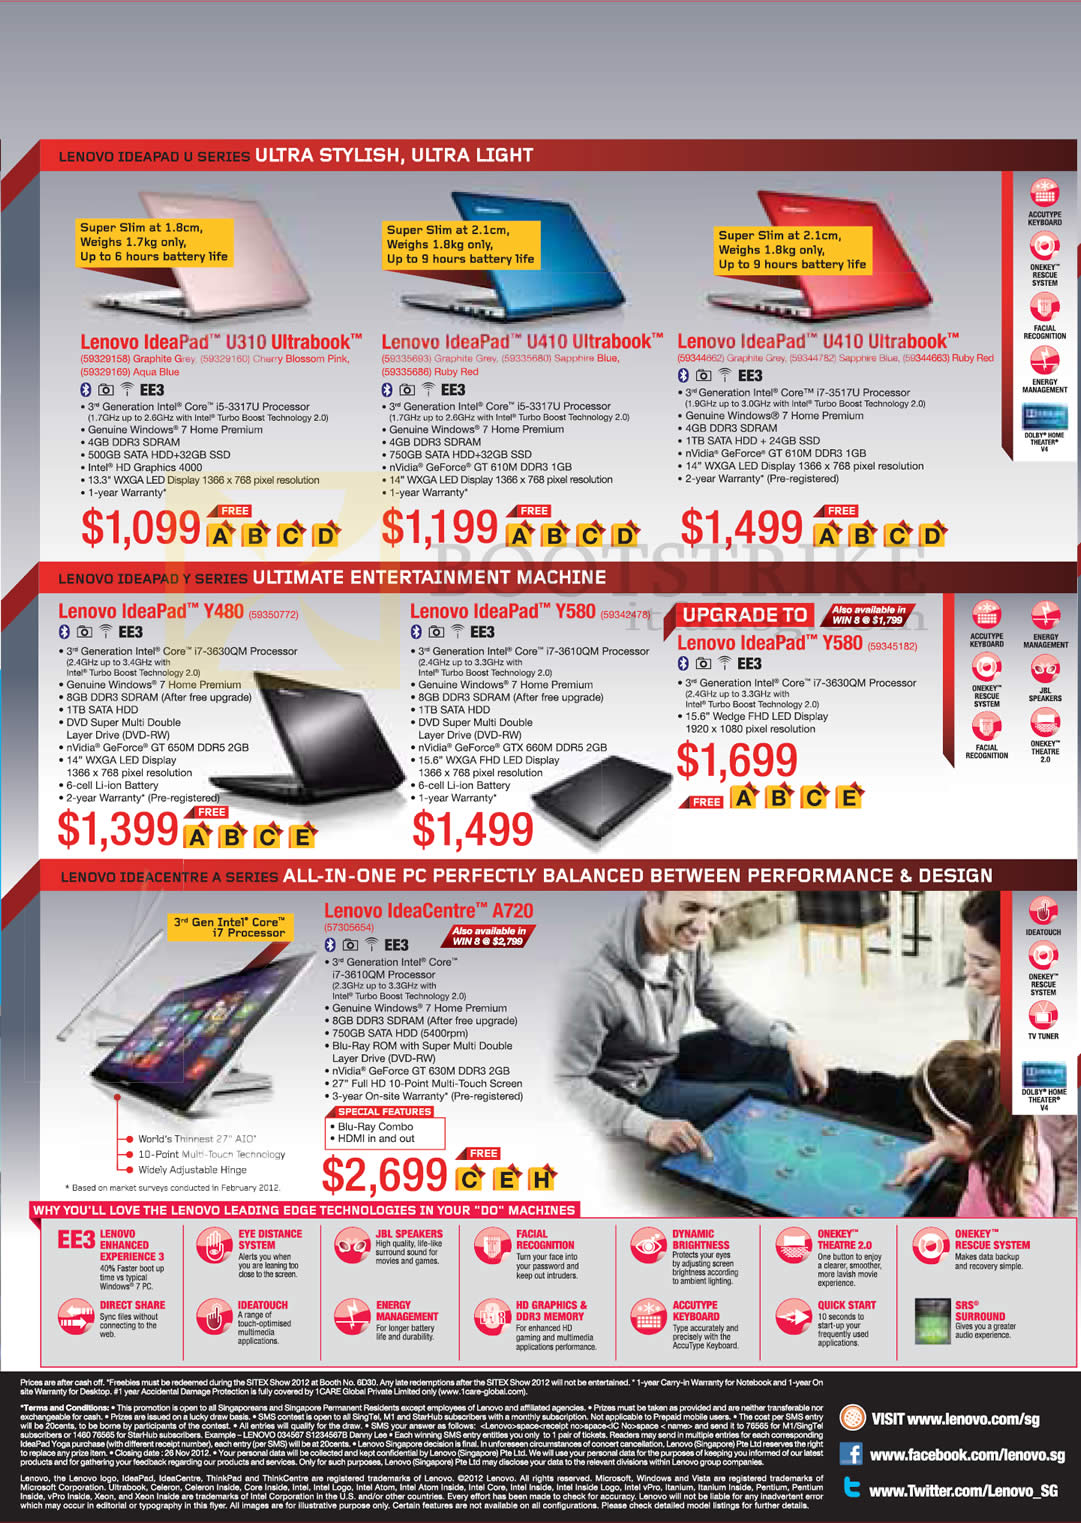 SITEX 2012 price list image brochure of Lenovo Notebooks Ultrabooks IdeaPad U310, U410, Y480, Y580, IdeaAcentre A720